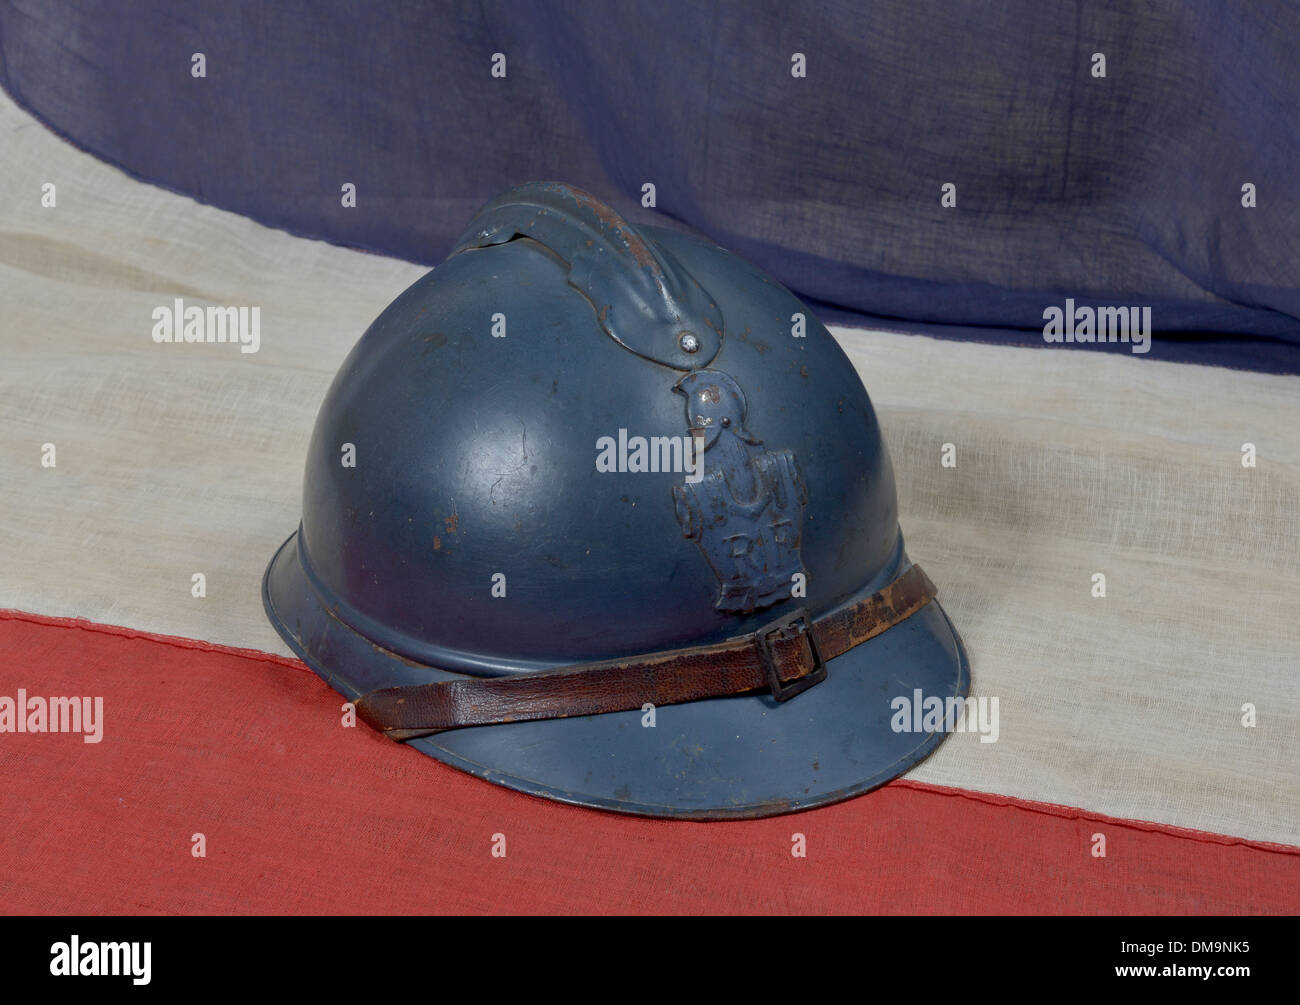 a46ea0fdcd1 french Adrian ww1 helmet on the french antique flag - Stock Image